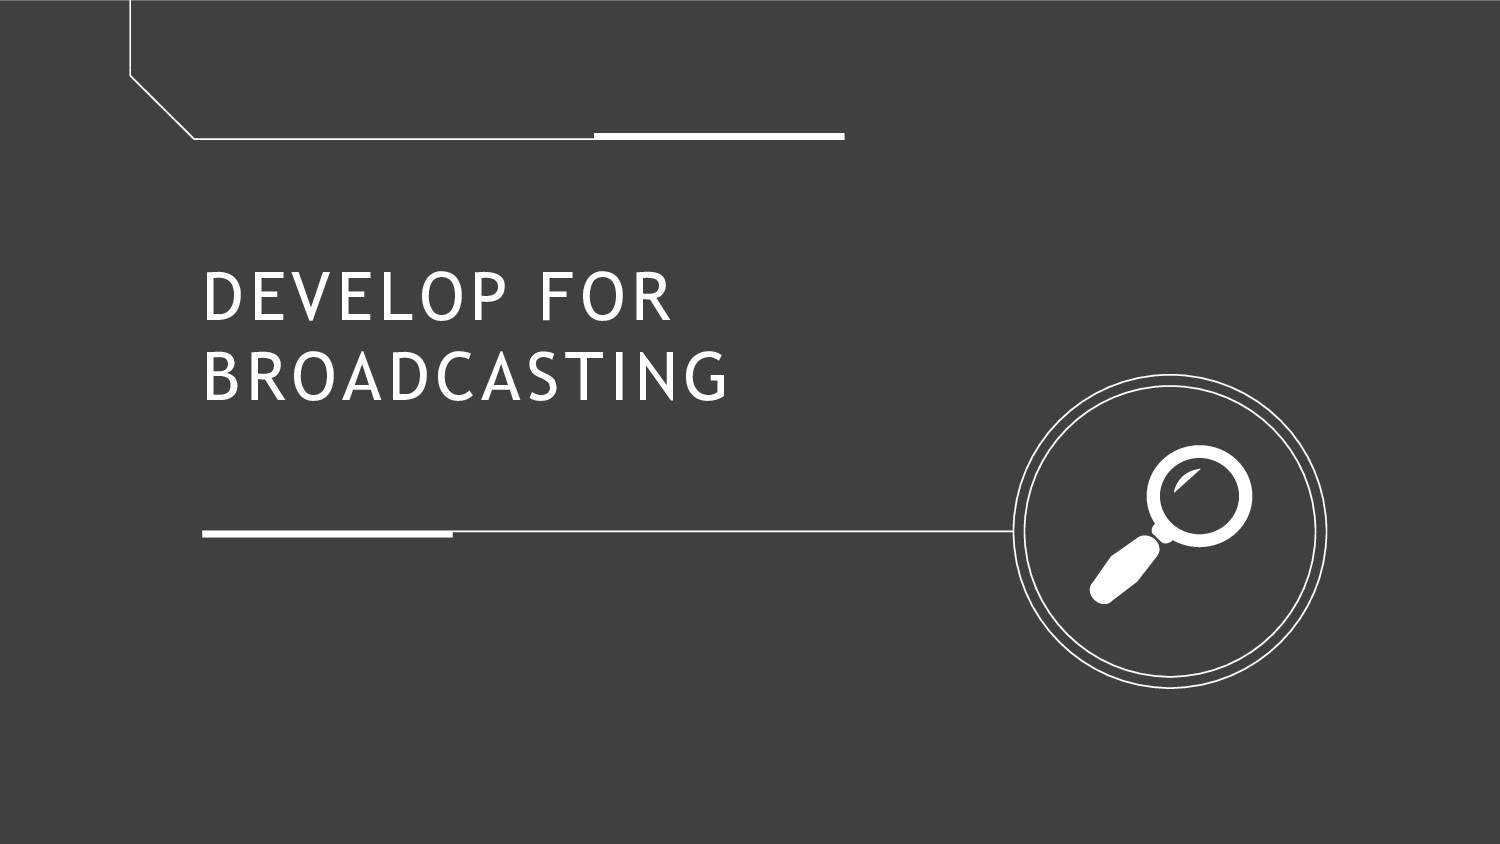 DEVELOP FOR BROADCASTING